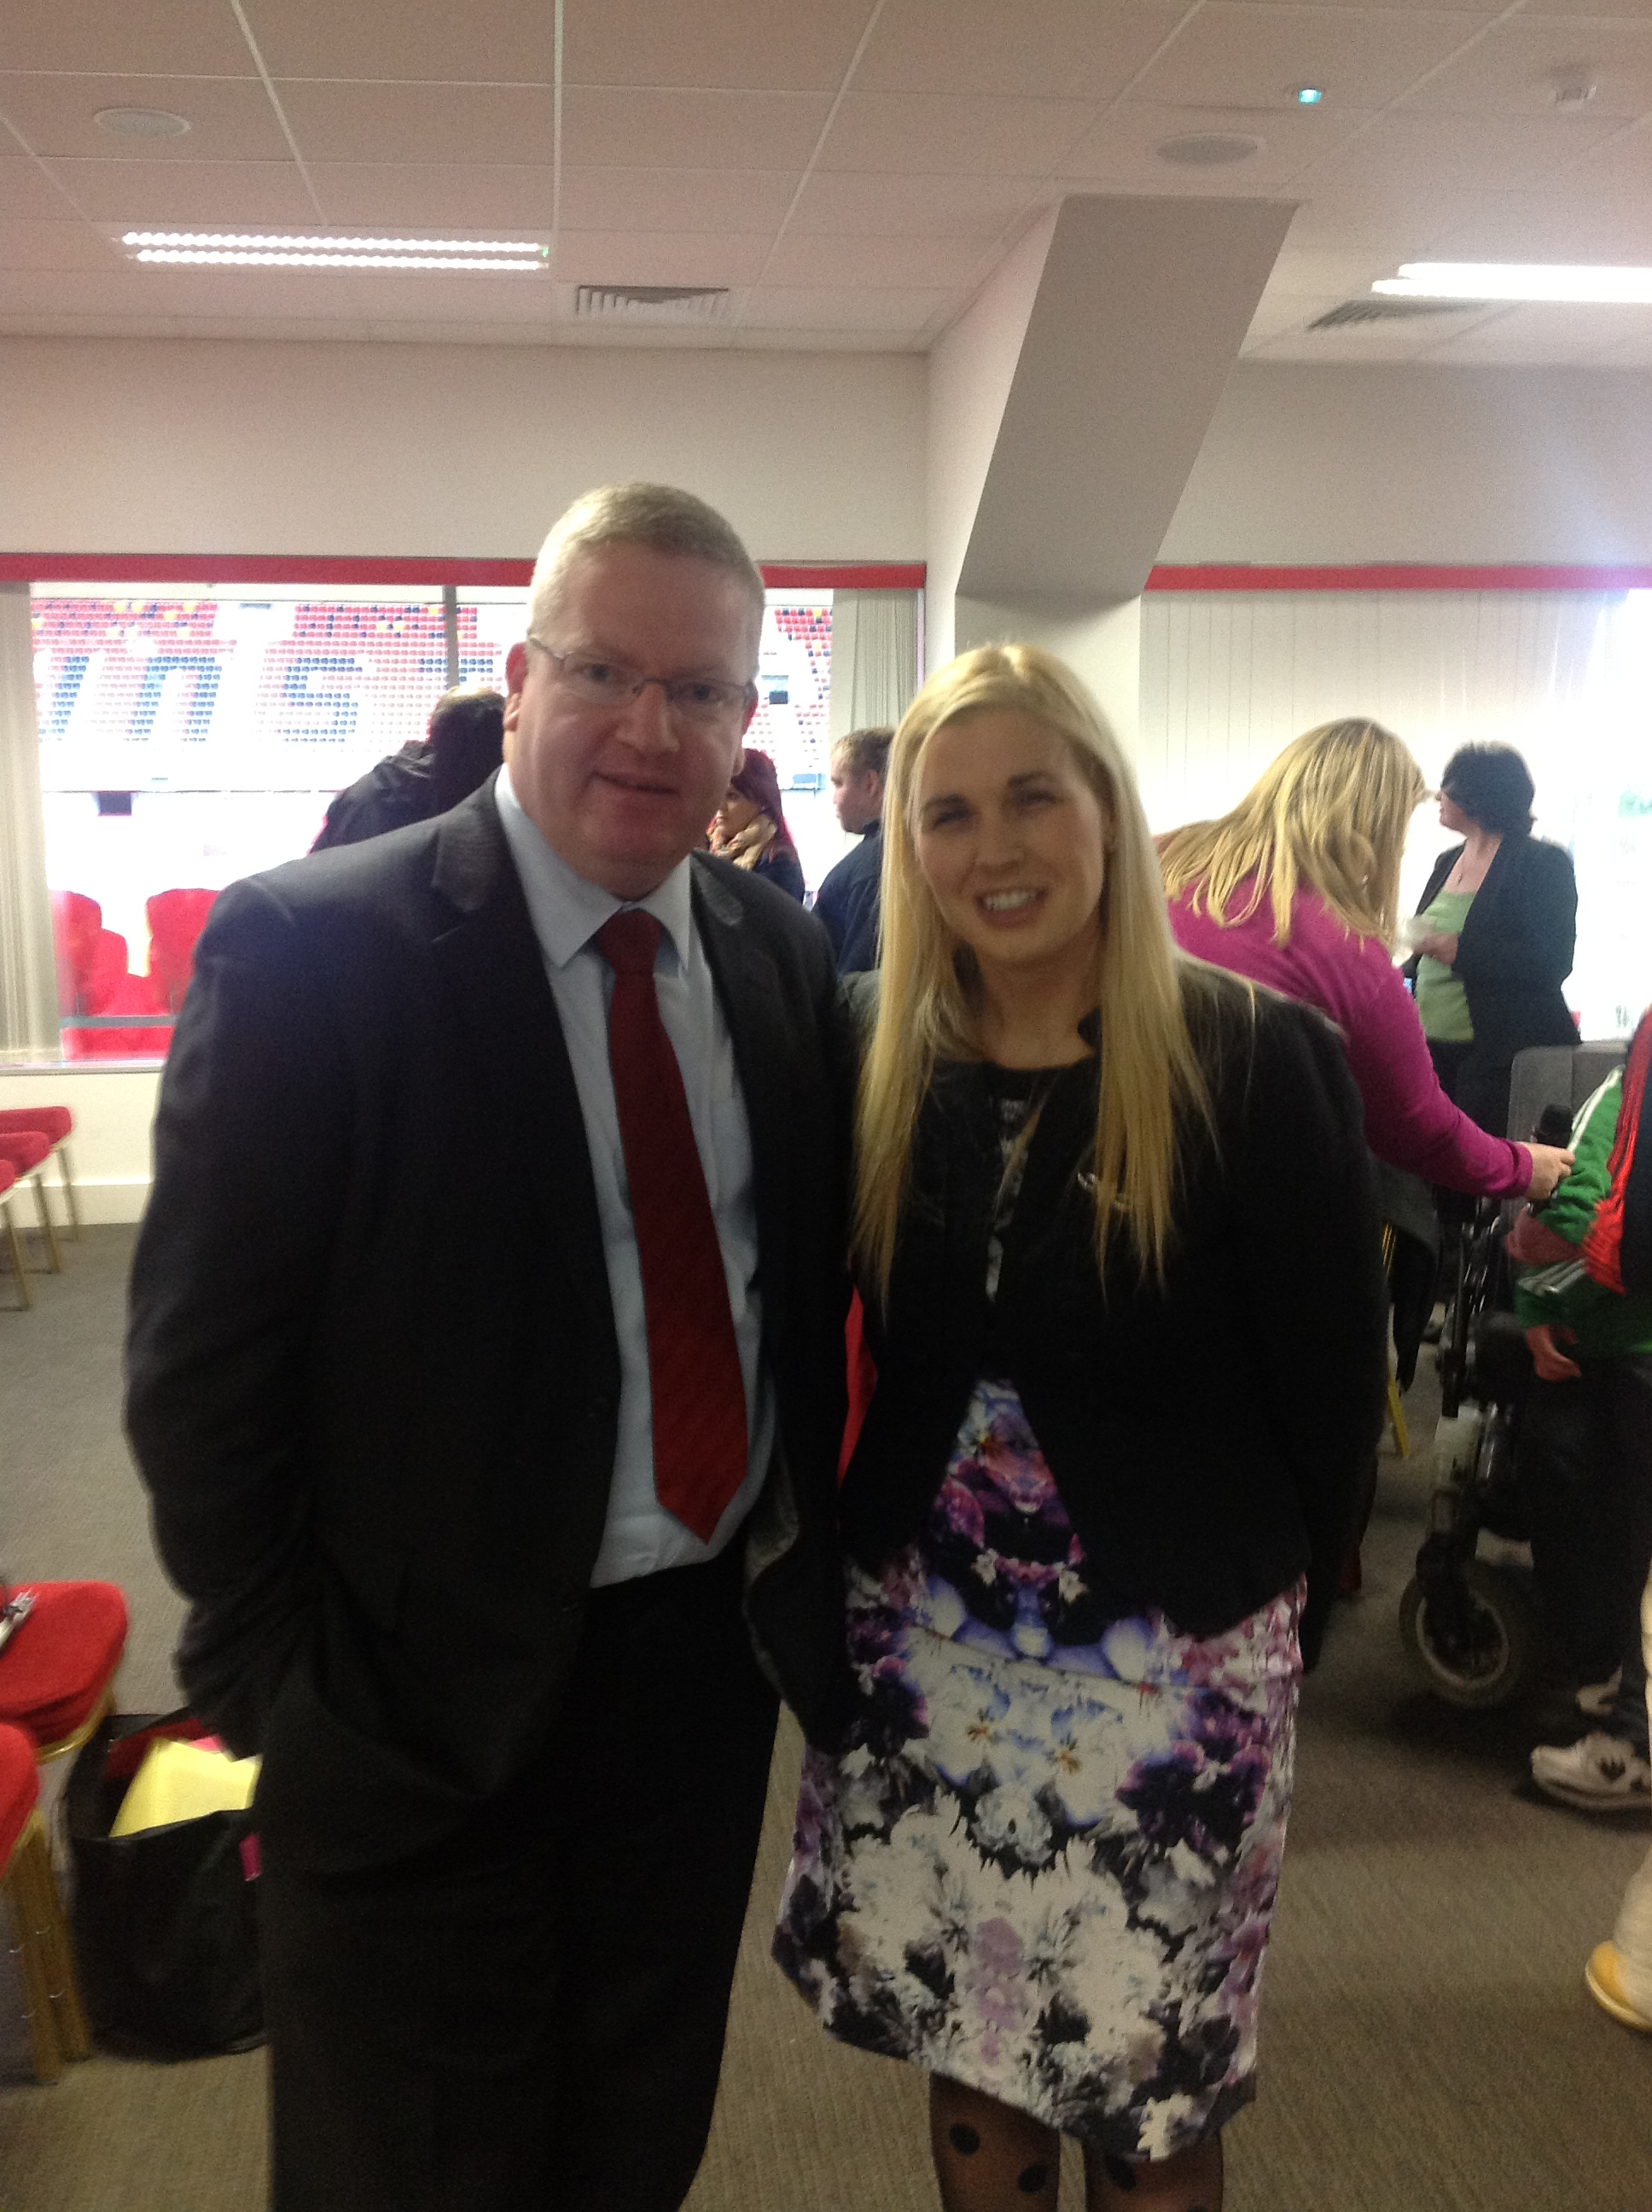 Sinead Kane and Dr. Fergal Barry at the Better Options event at Thomond Park, Limerick